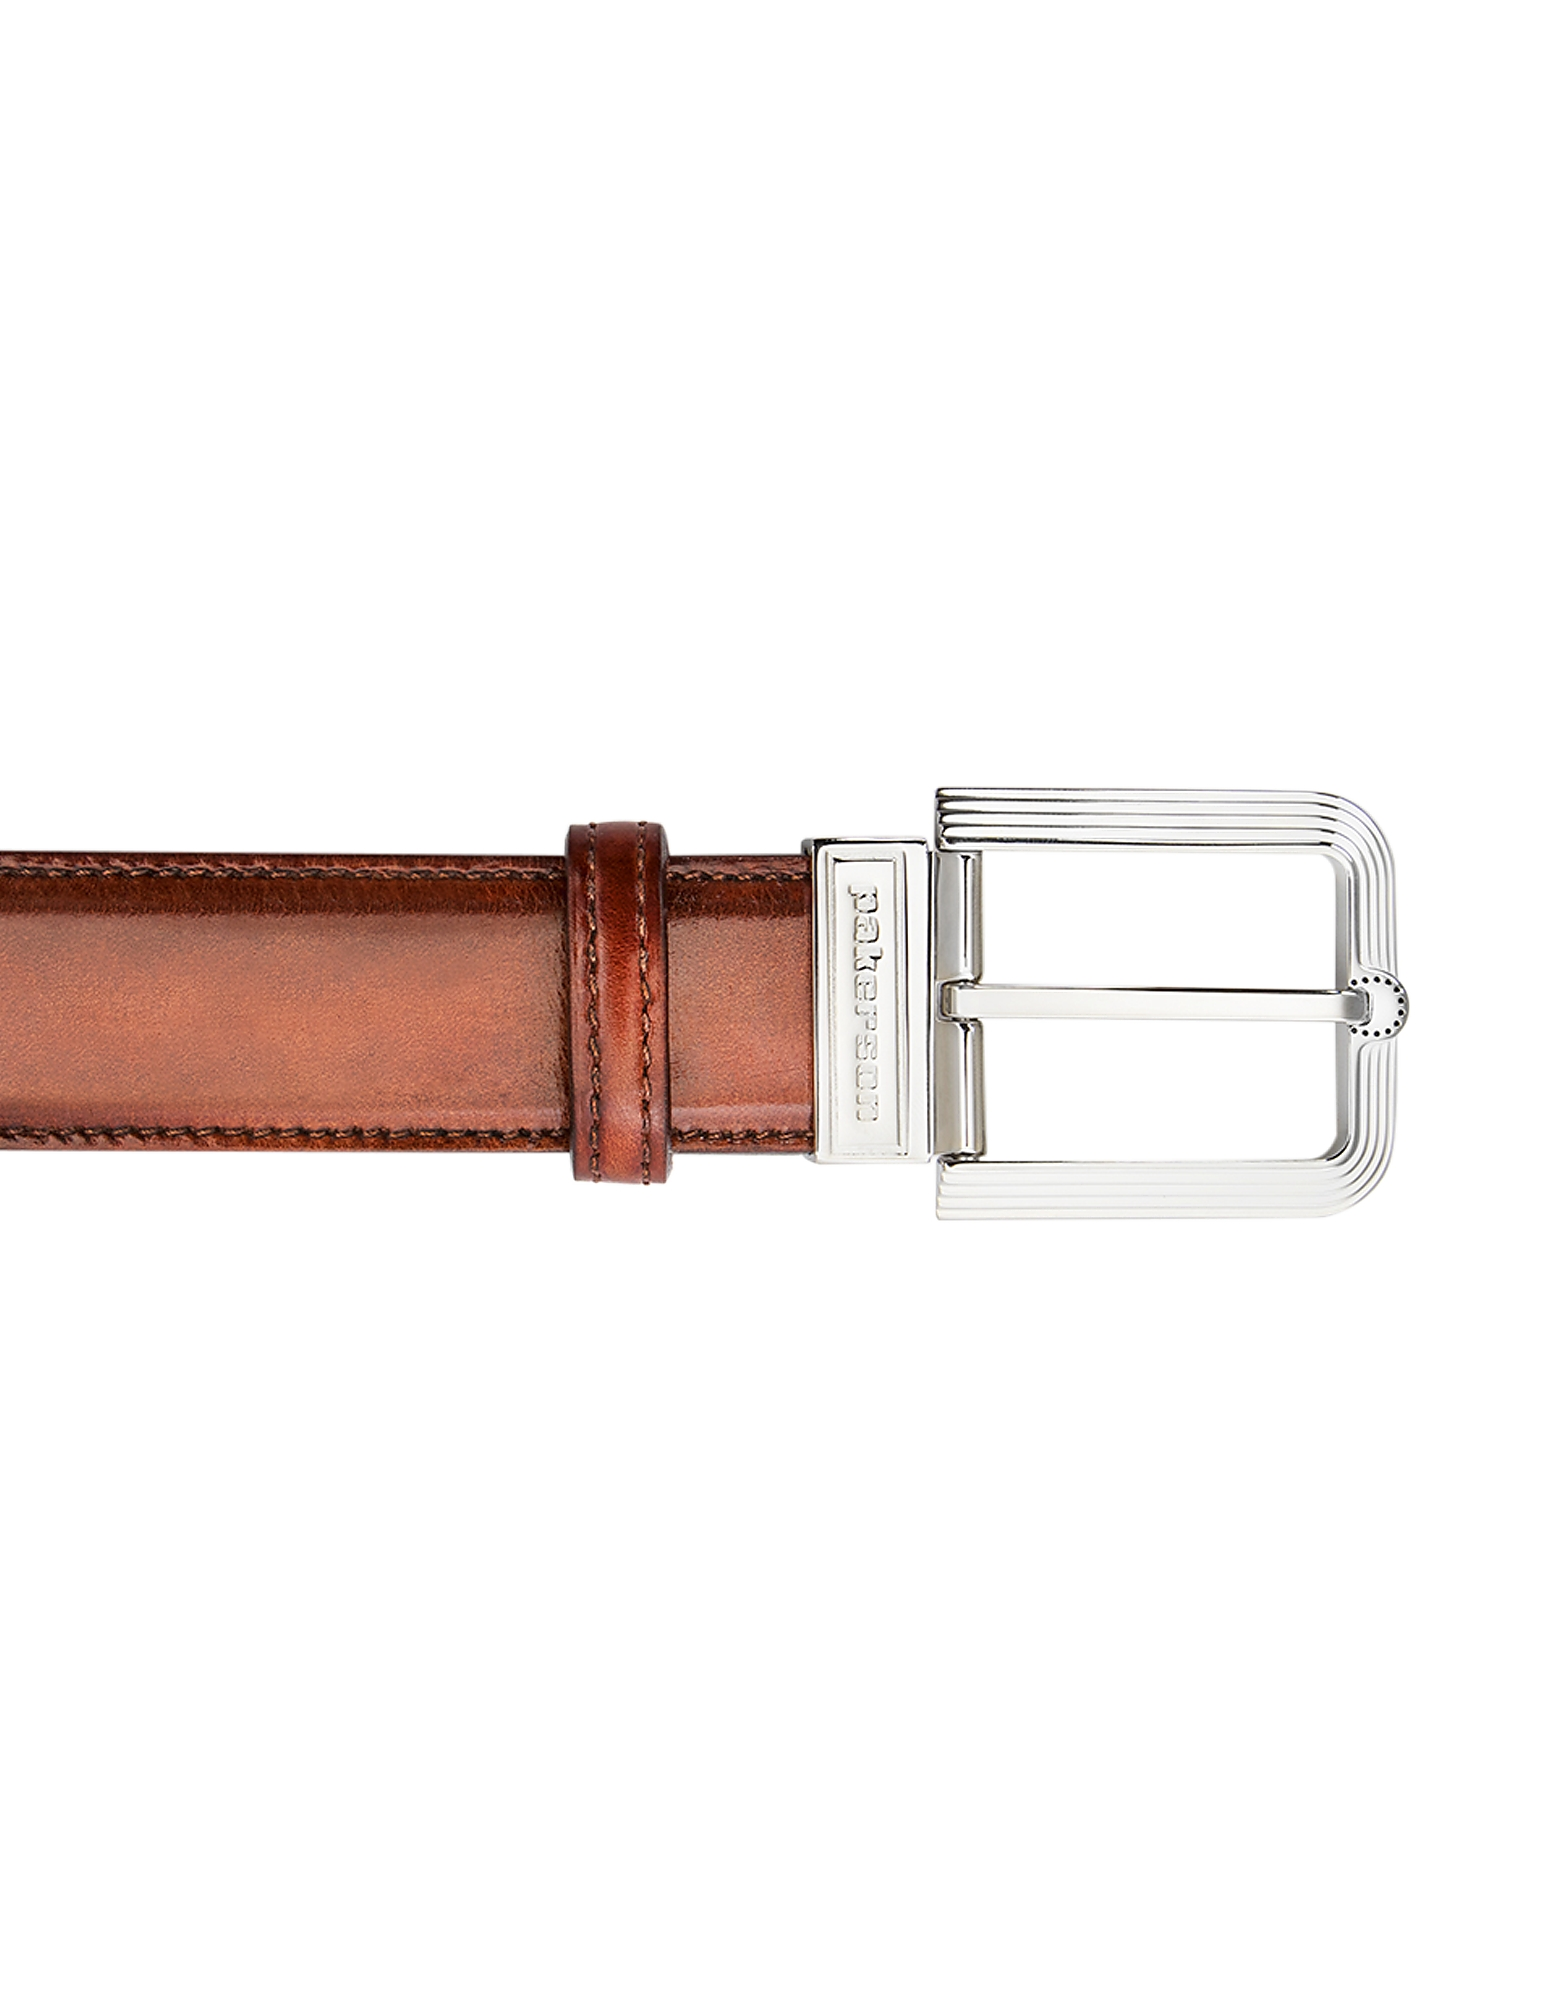 Pakerson Designer Men's Belts, Fiesole Wood Italian Leather Belt w/ Silver Buckle